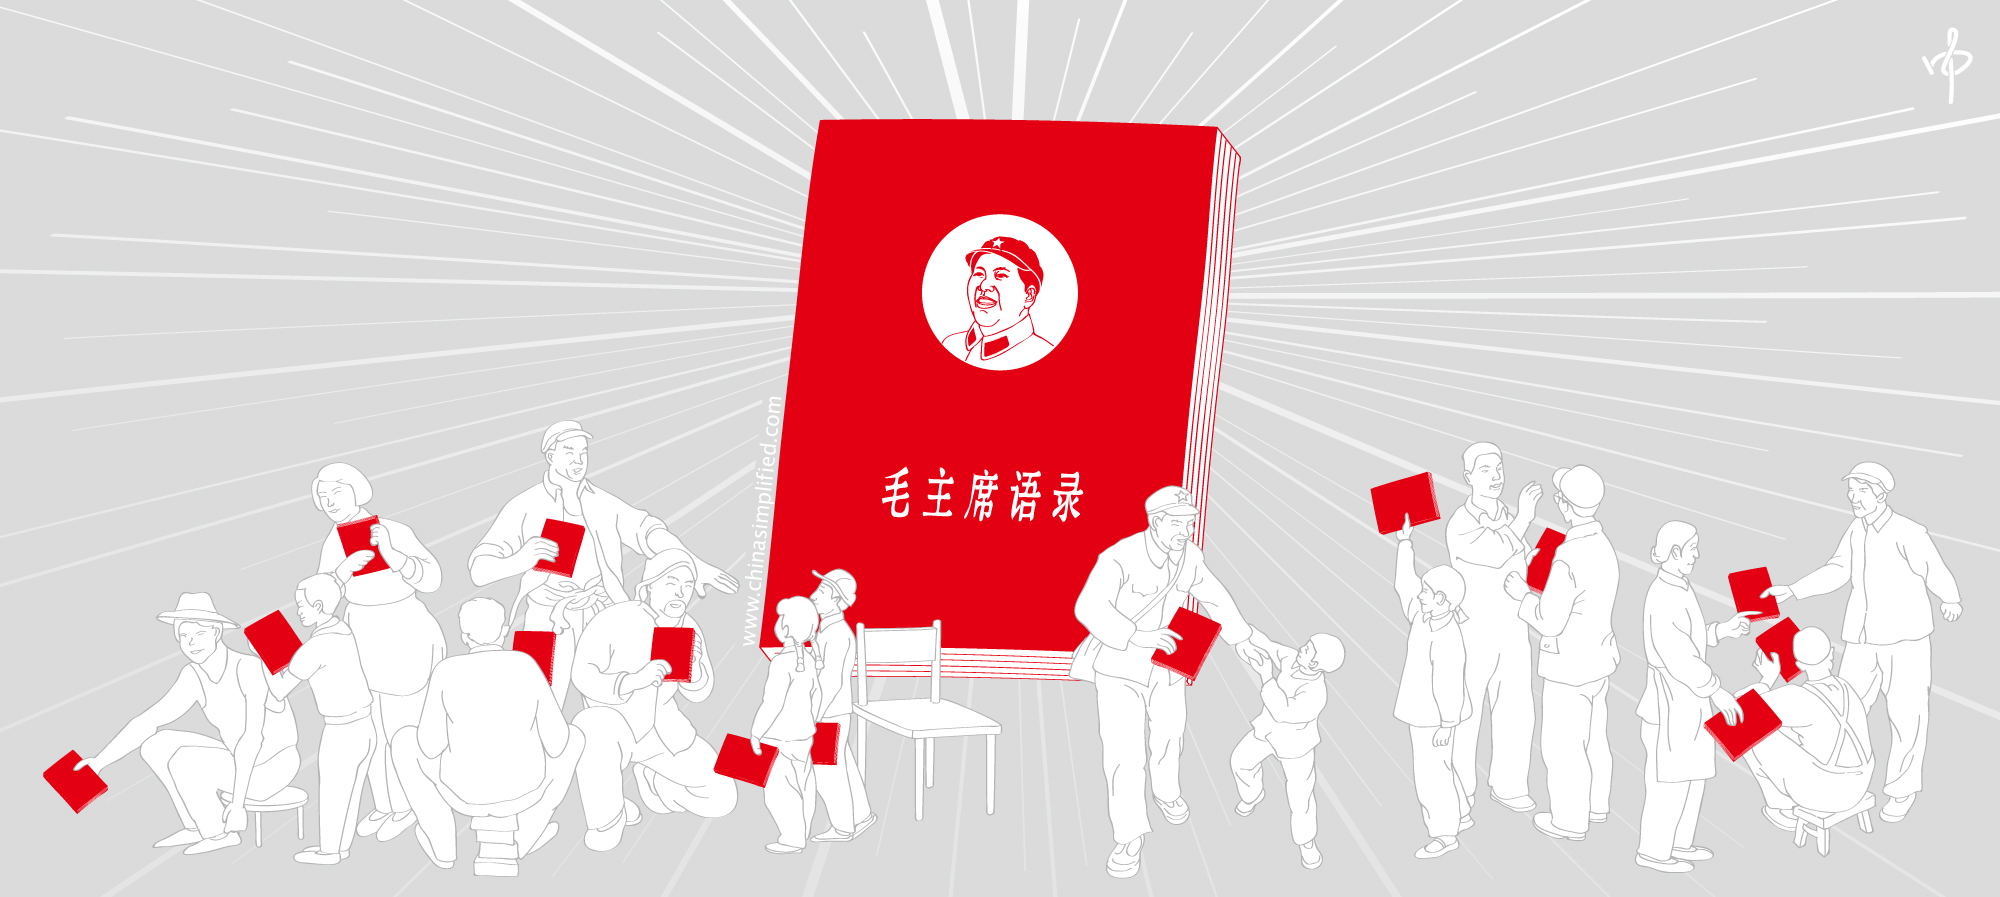 Viral Marketing: Mao's Little Red Book as a Case Study